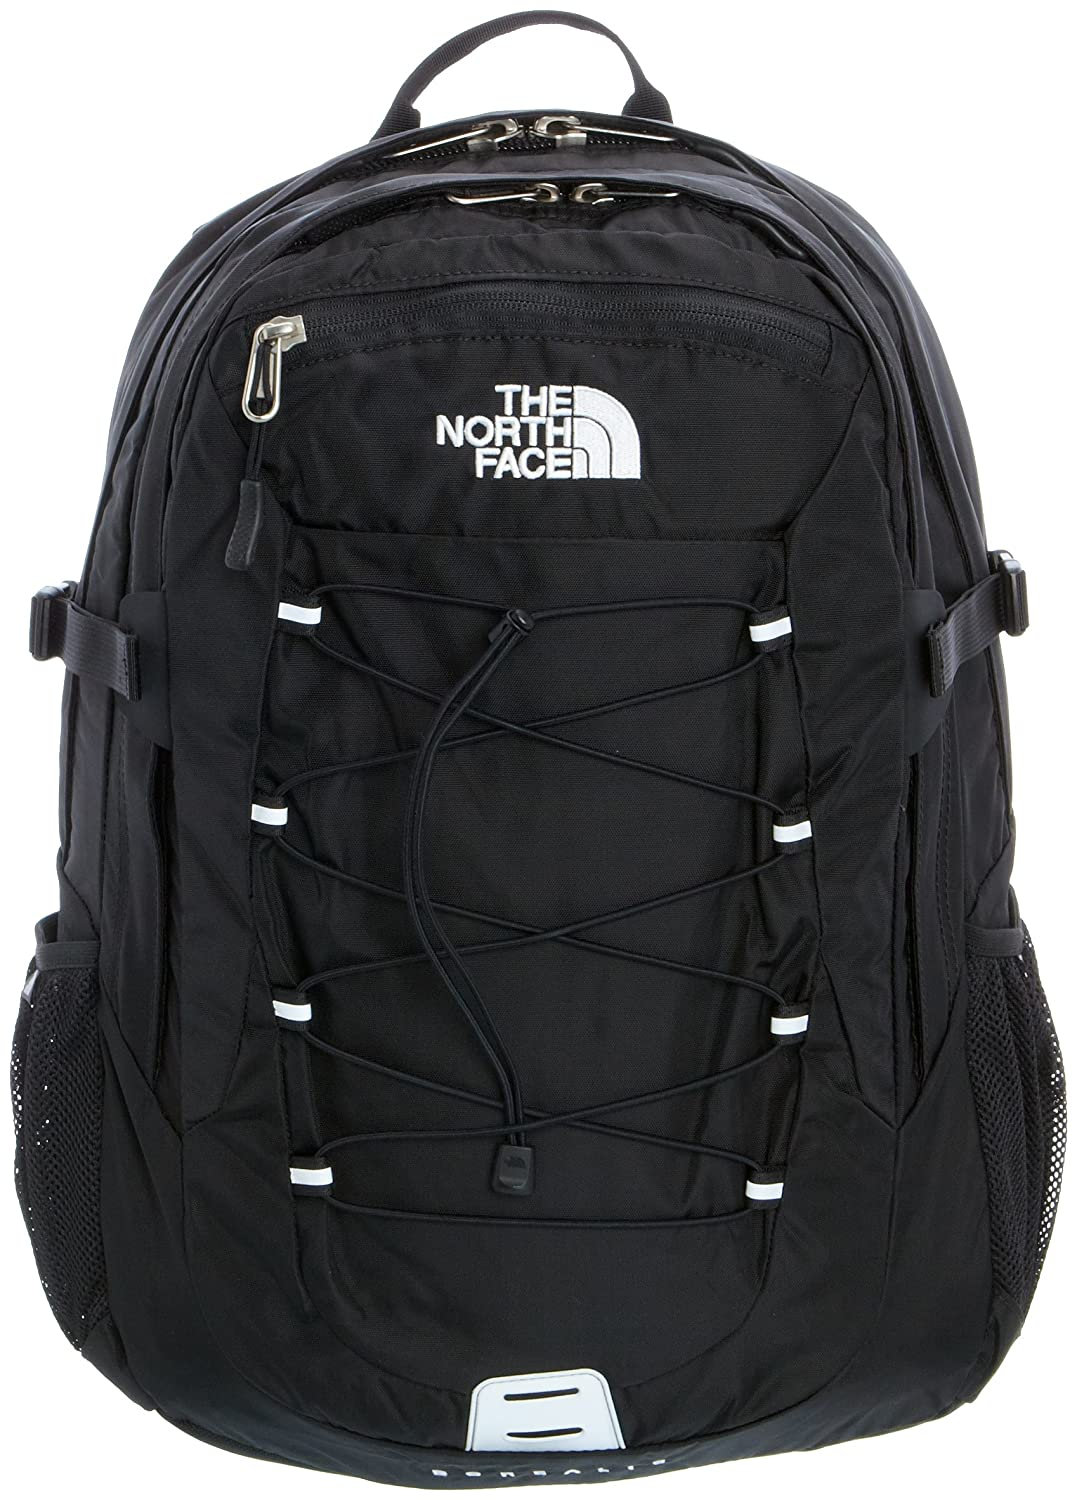 the north face borealis backpack hand bags pinterest. Black Bedroom Furniture Sets. Home Design Ideas